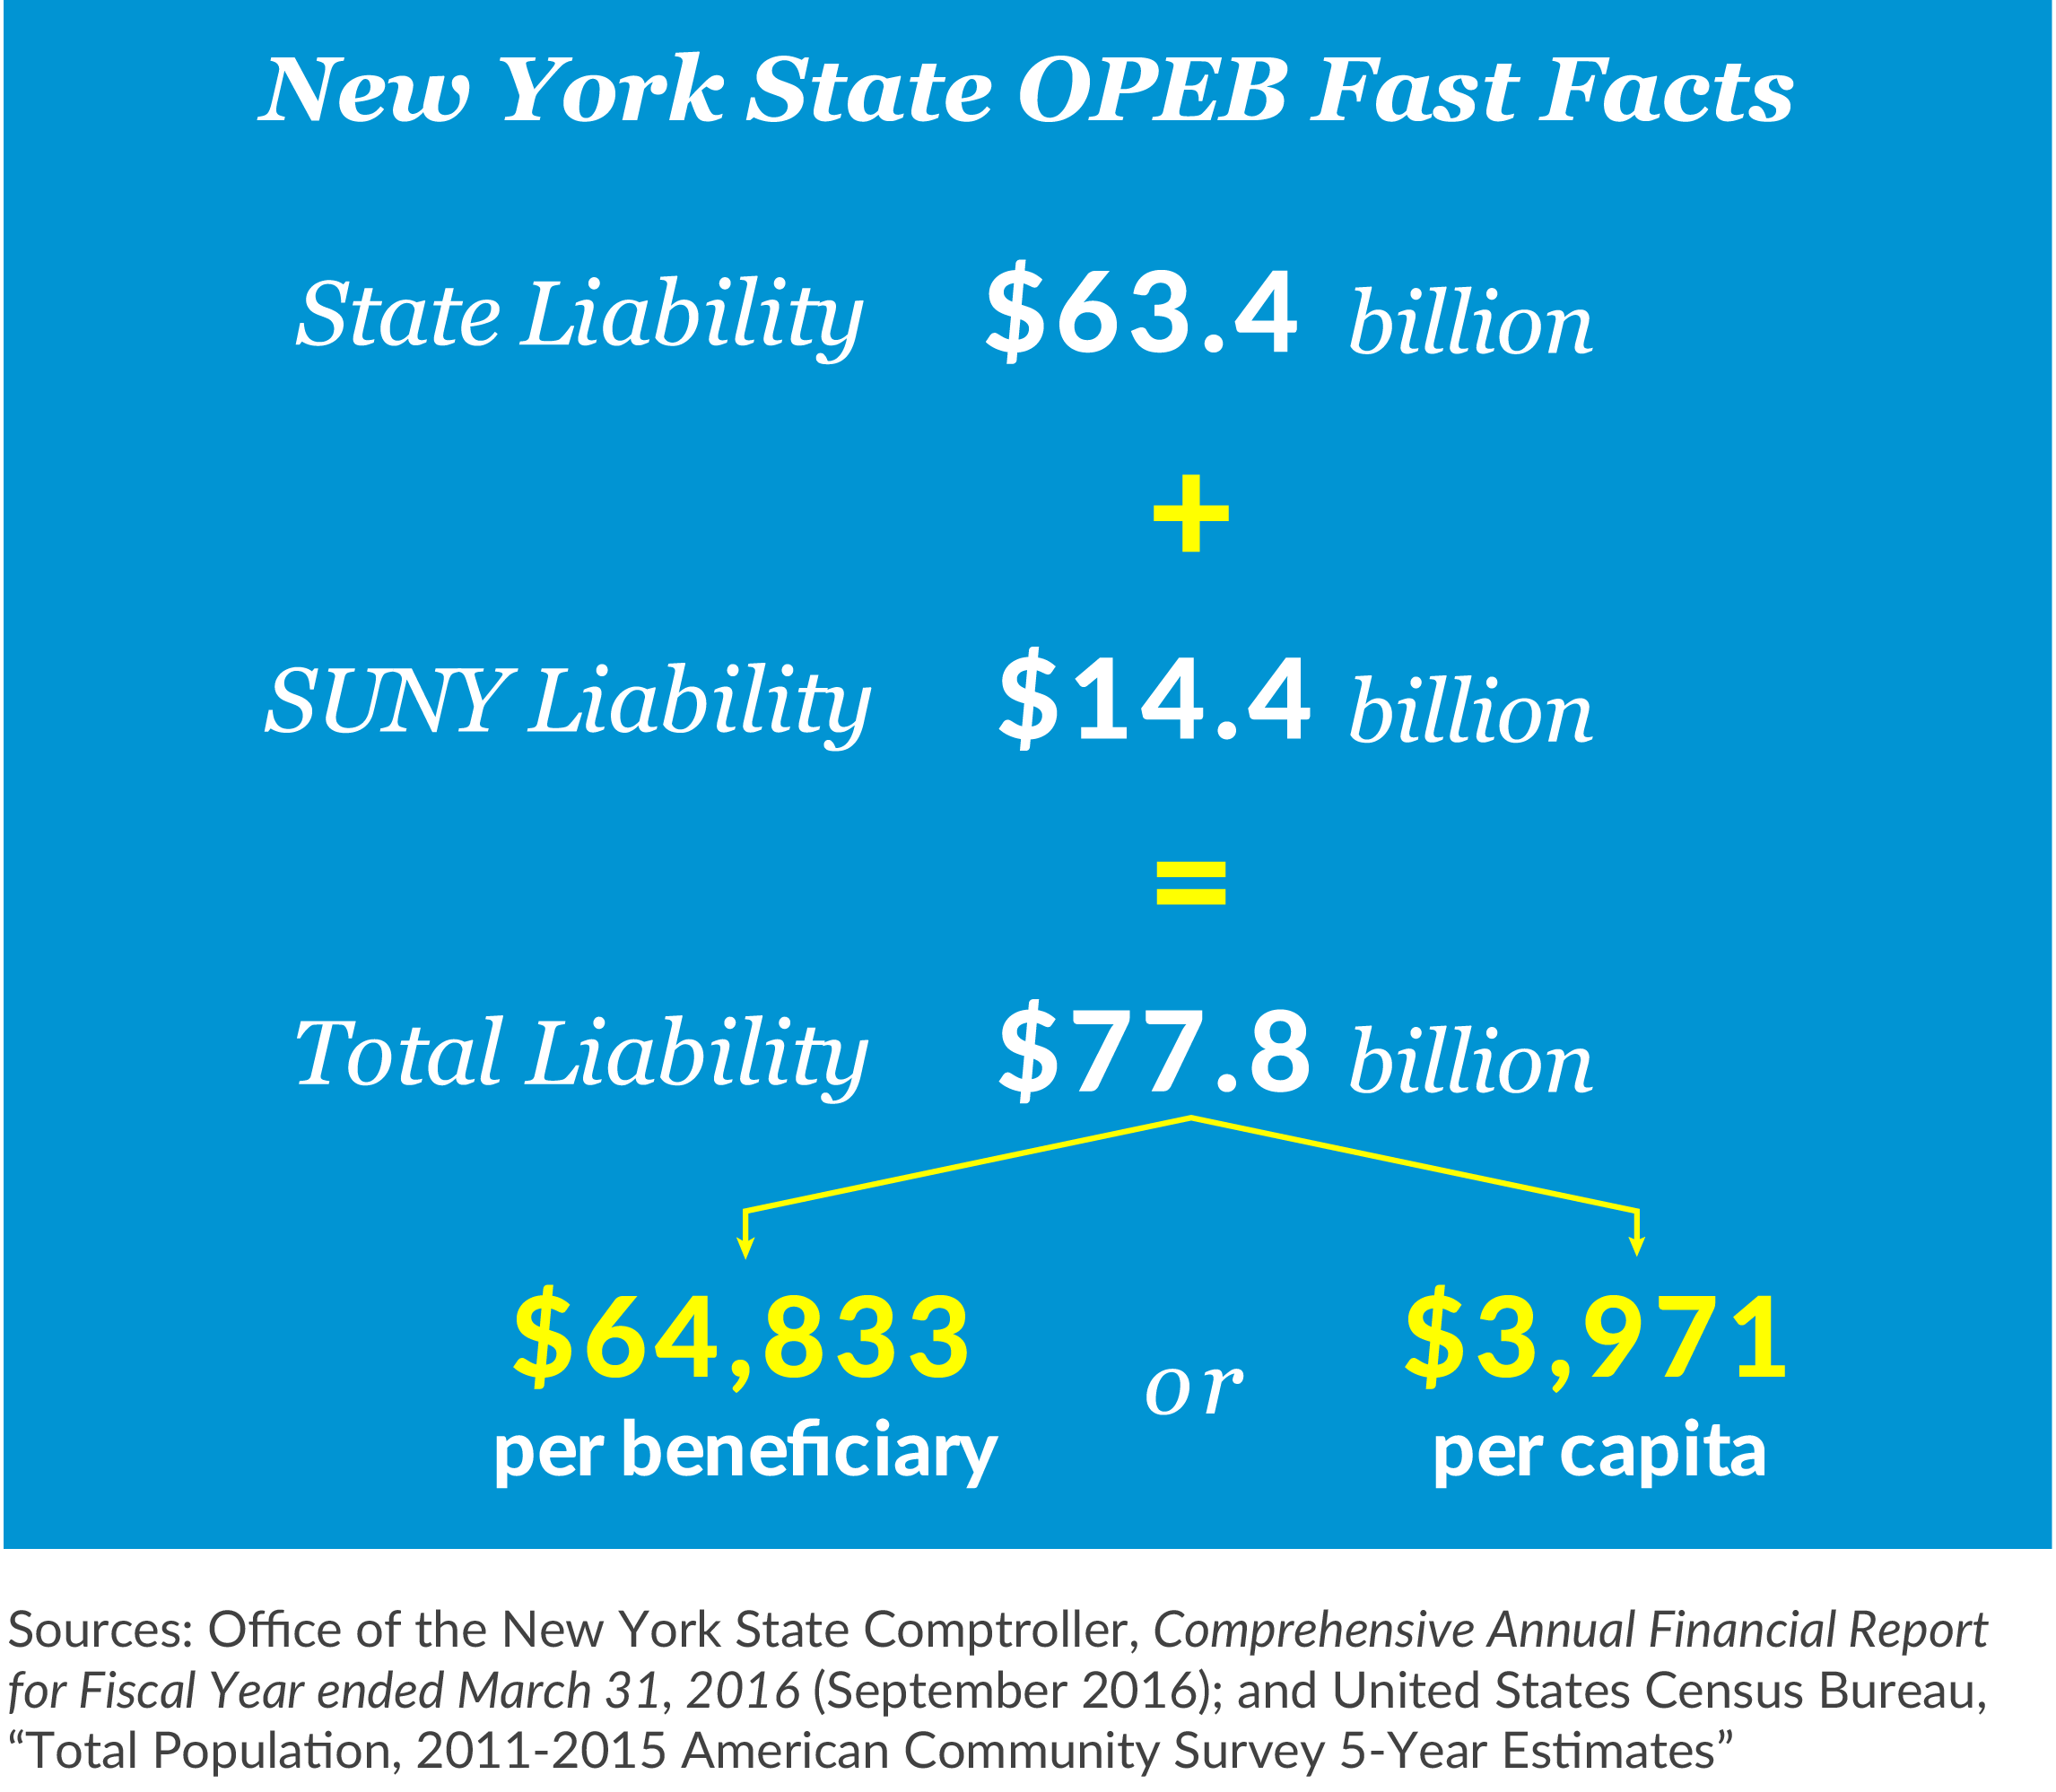 New York State OPEB Fast Facts